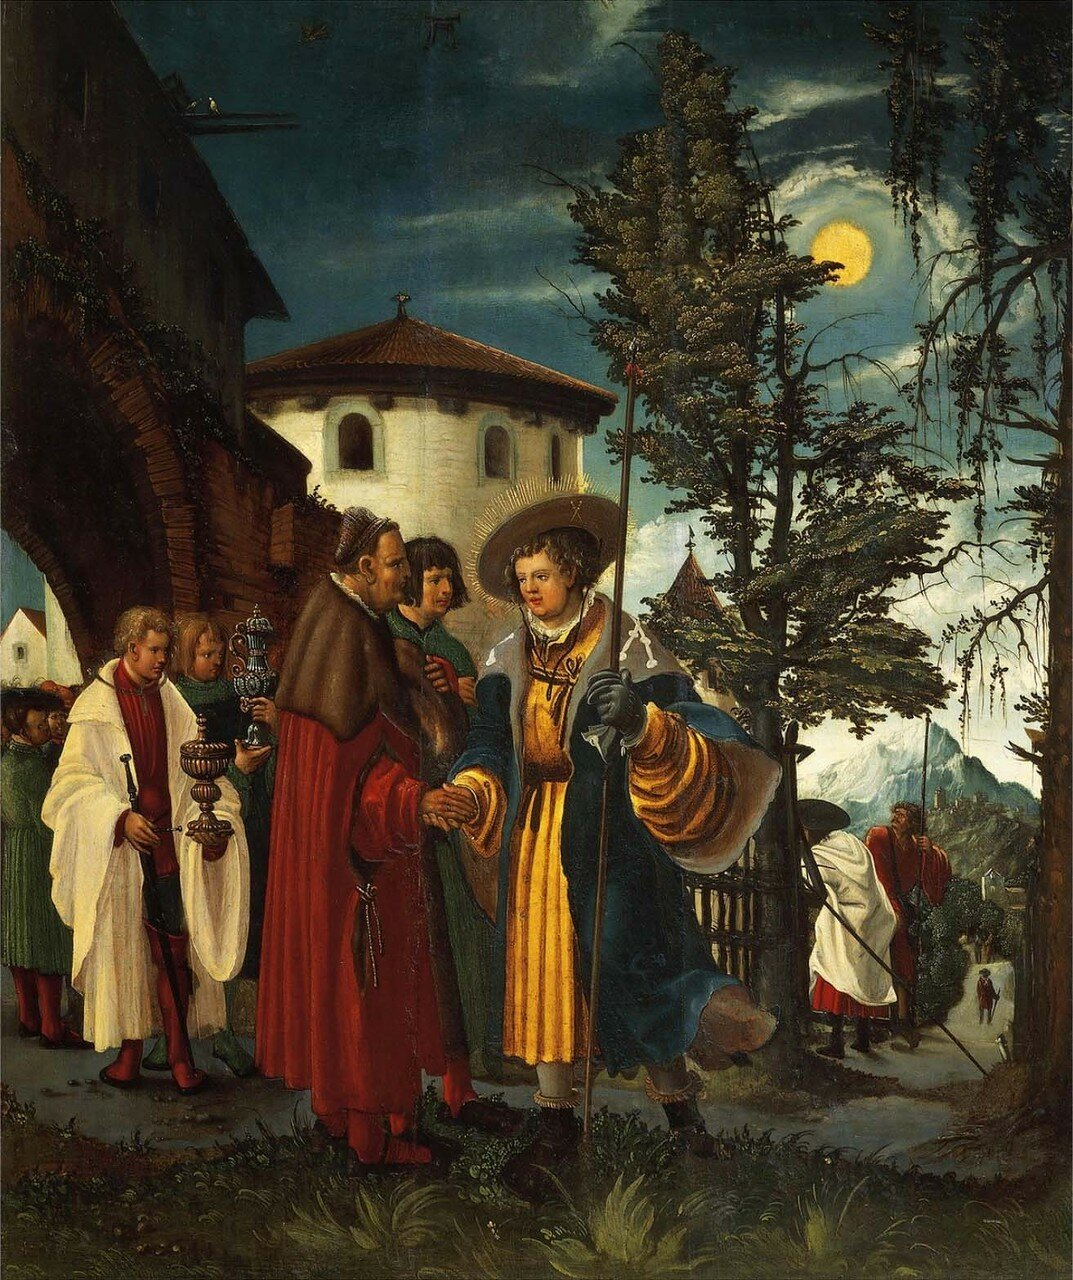 St Florian taking leave of the Monastery, 1530, by Albrecht Altdorfer (1480-1538).